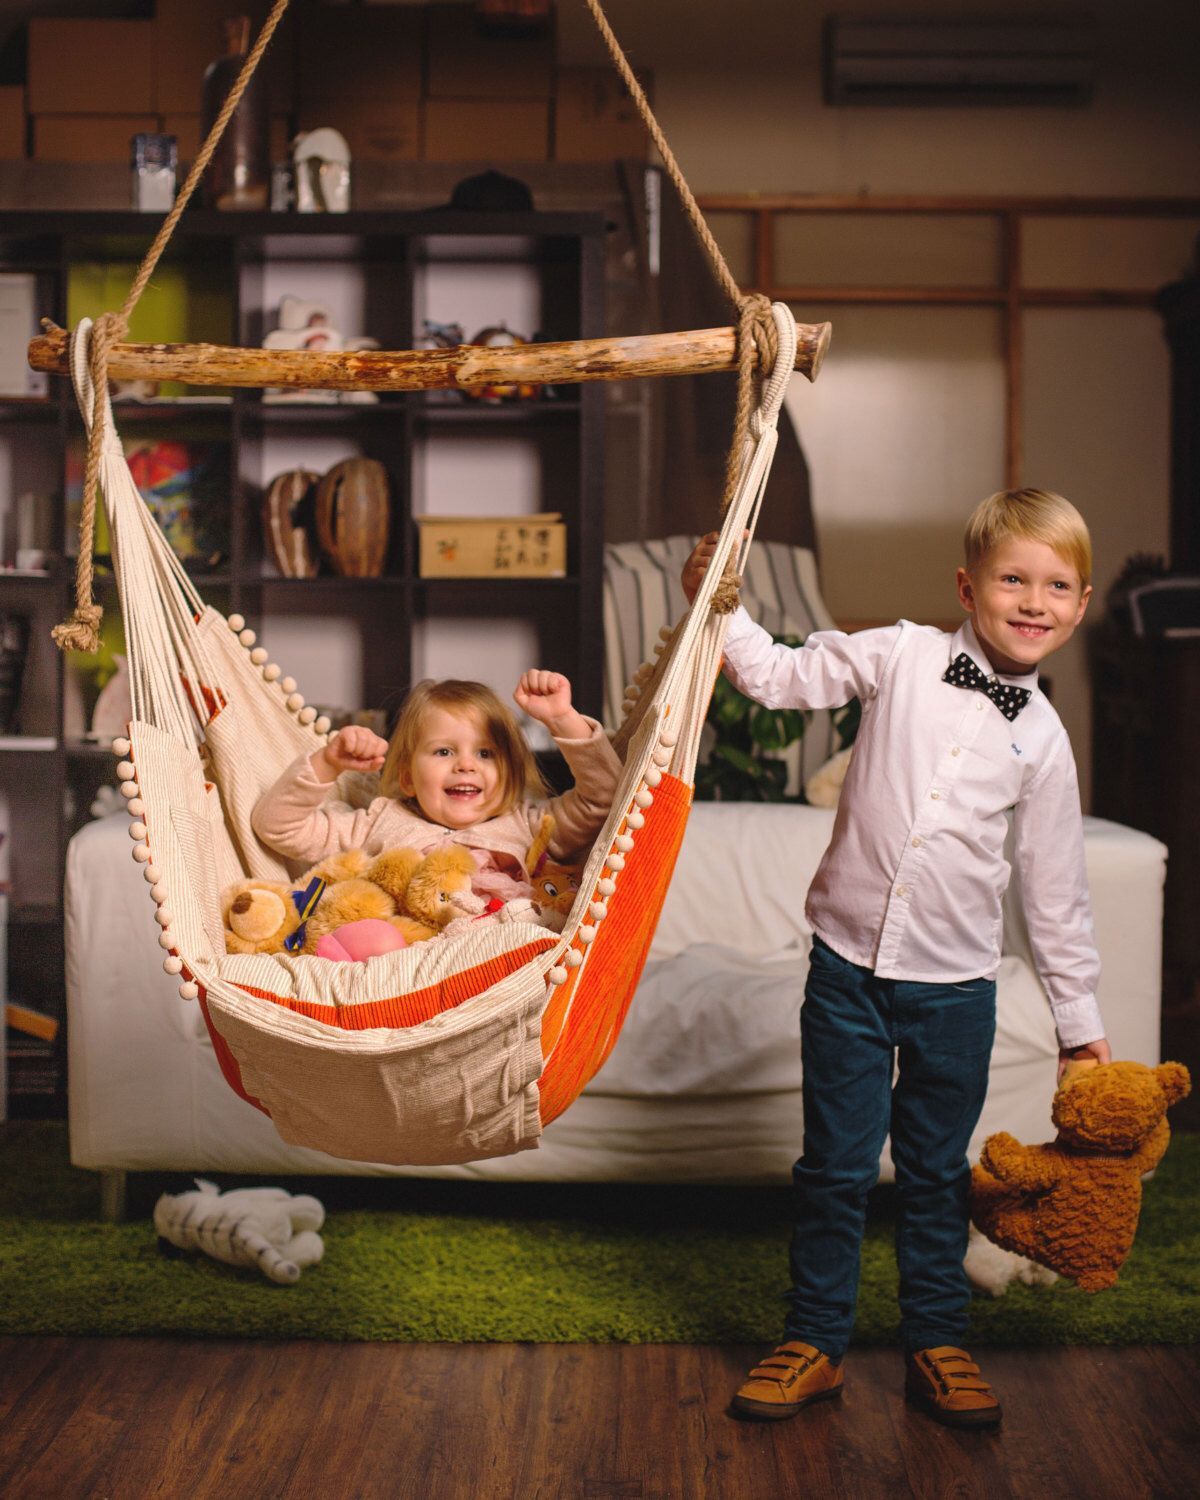 looking for a stylish reading nook or quiet time space for your child u0027s bedroom  check out this gorgeous hammock chair from etsy store chilloutchair  hammock chair by chilloutchair on etsy https   www etsy        rh   pinterest